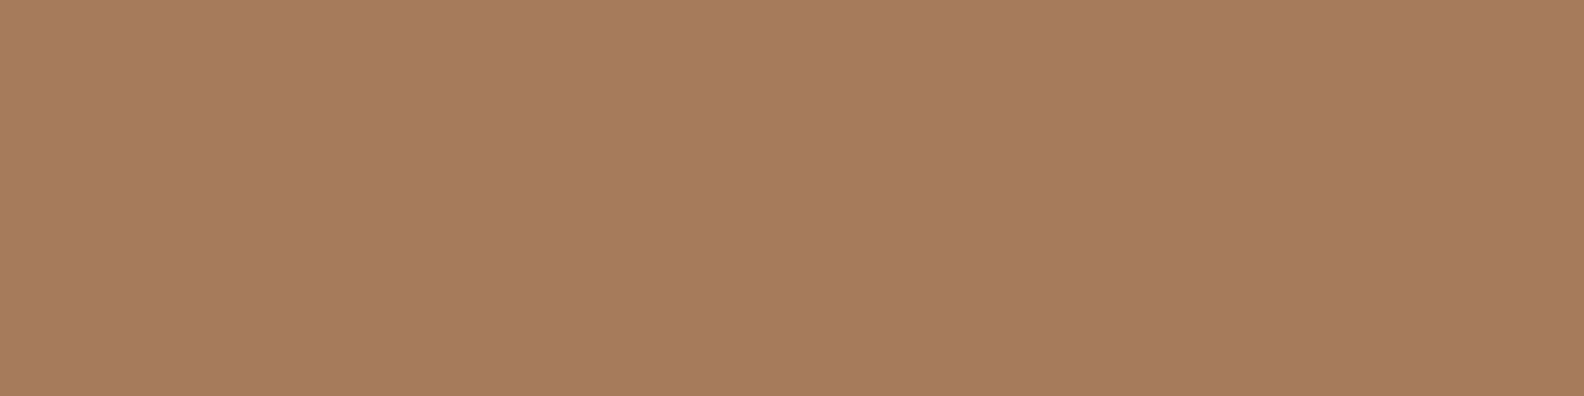 1584x396 French Beige Solid Color Background